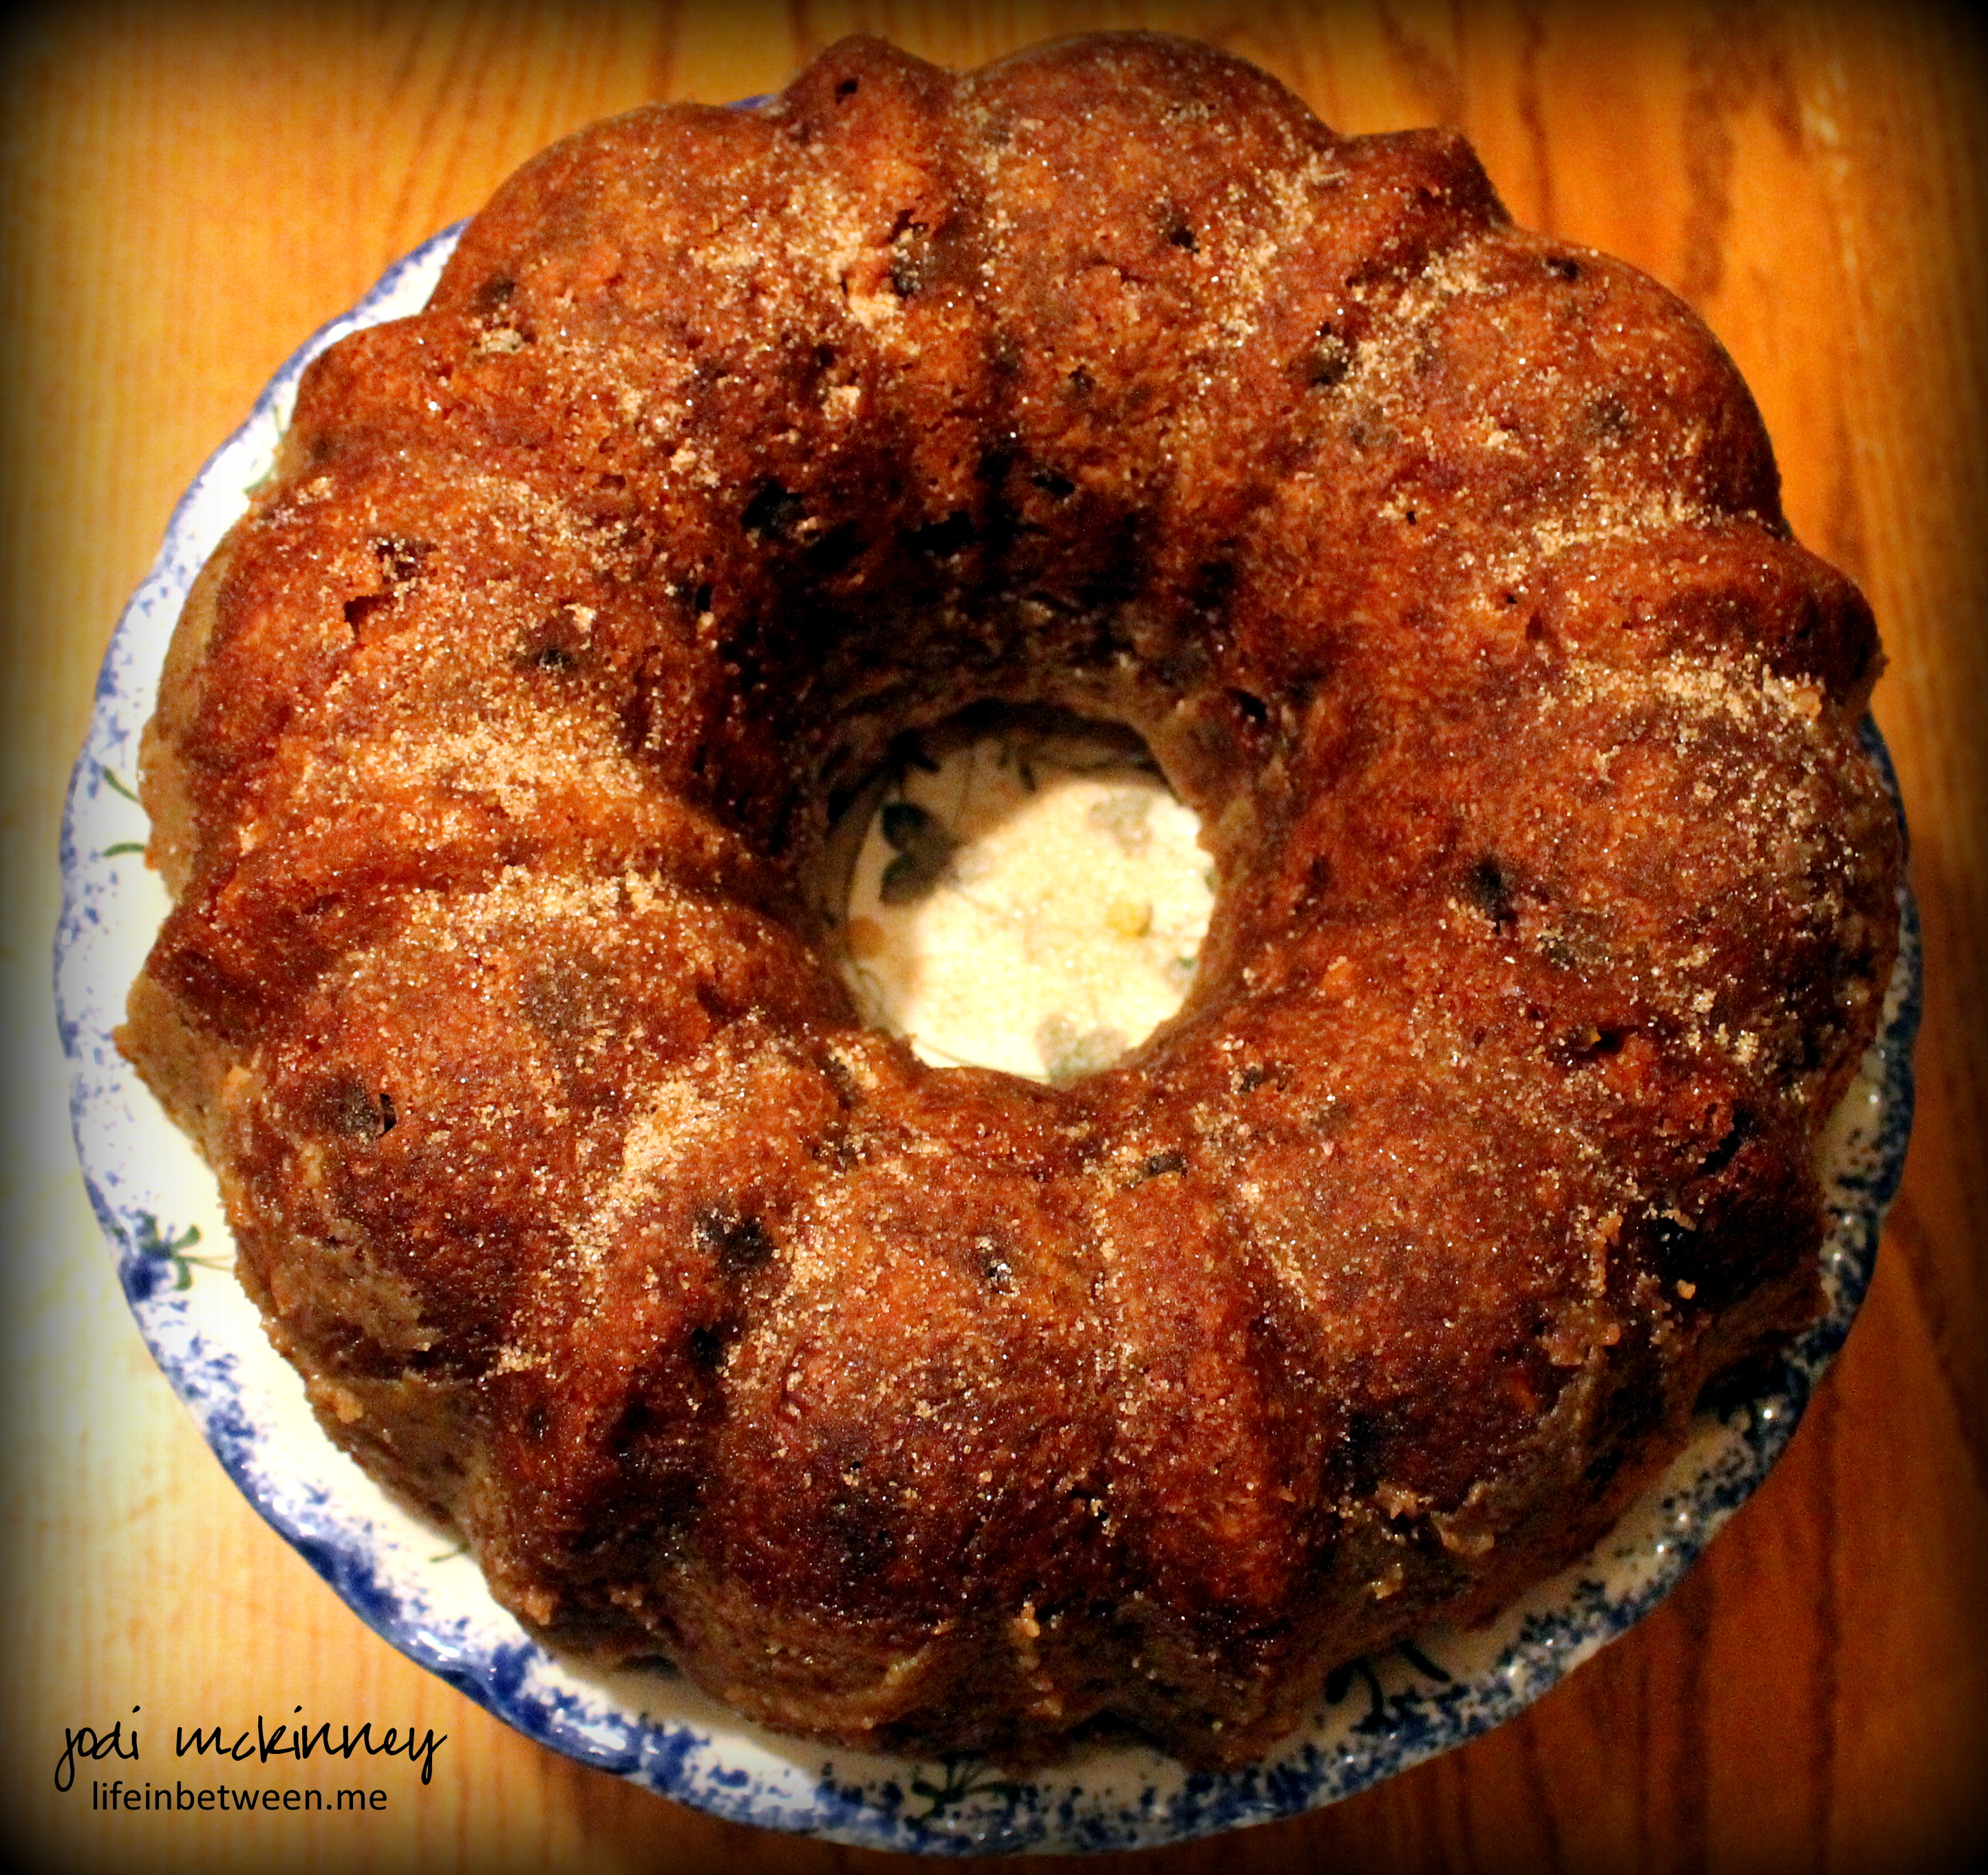 Raw Apple Cake Made With Coffee